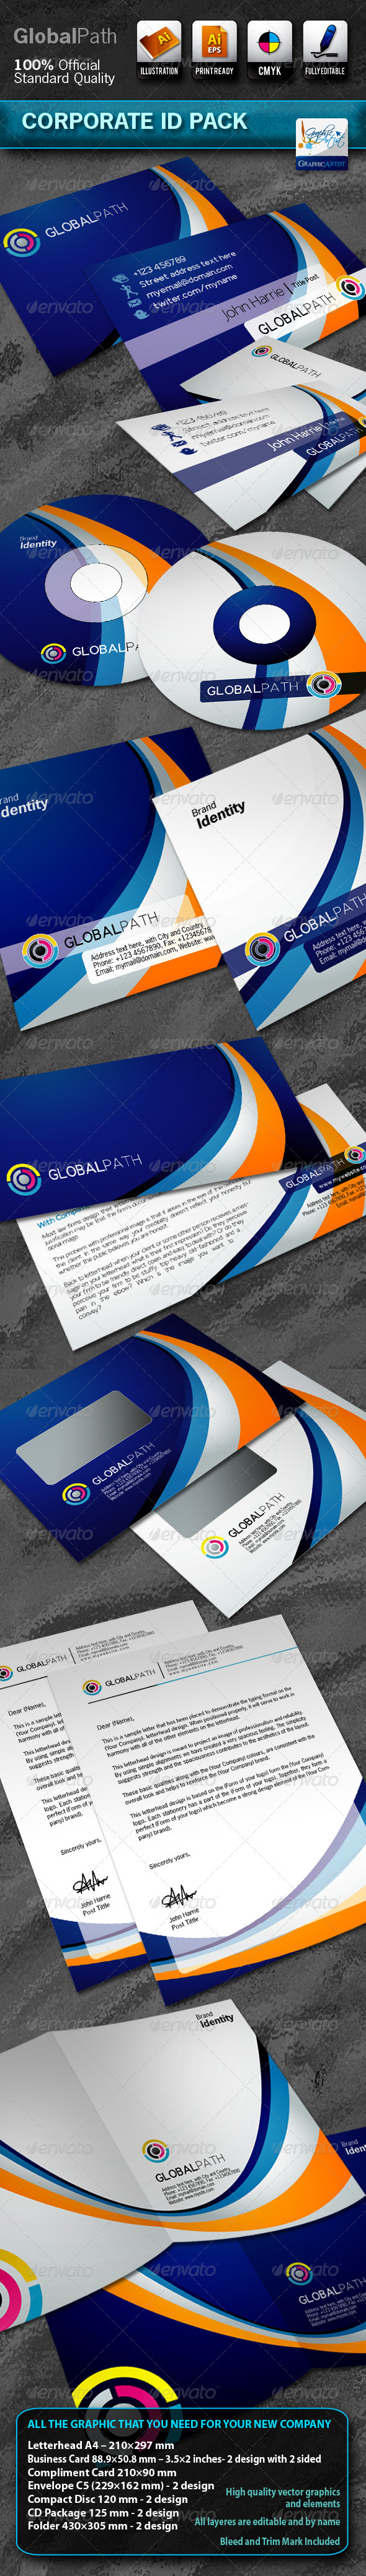 Business Corporate ID Pack With Logo - Stationery Print Templates